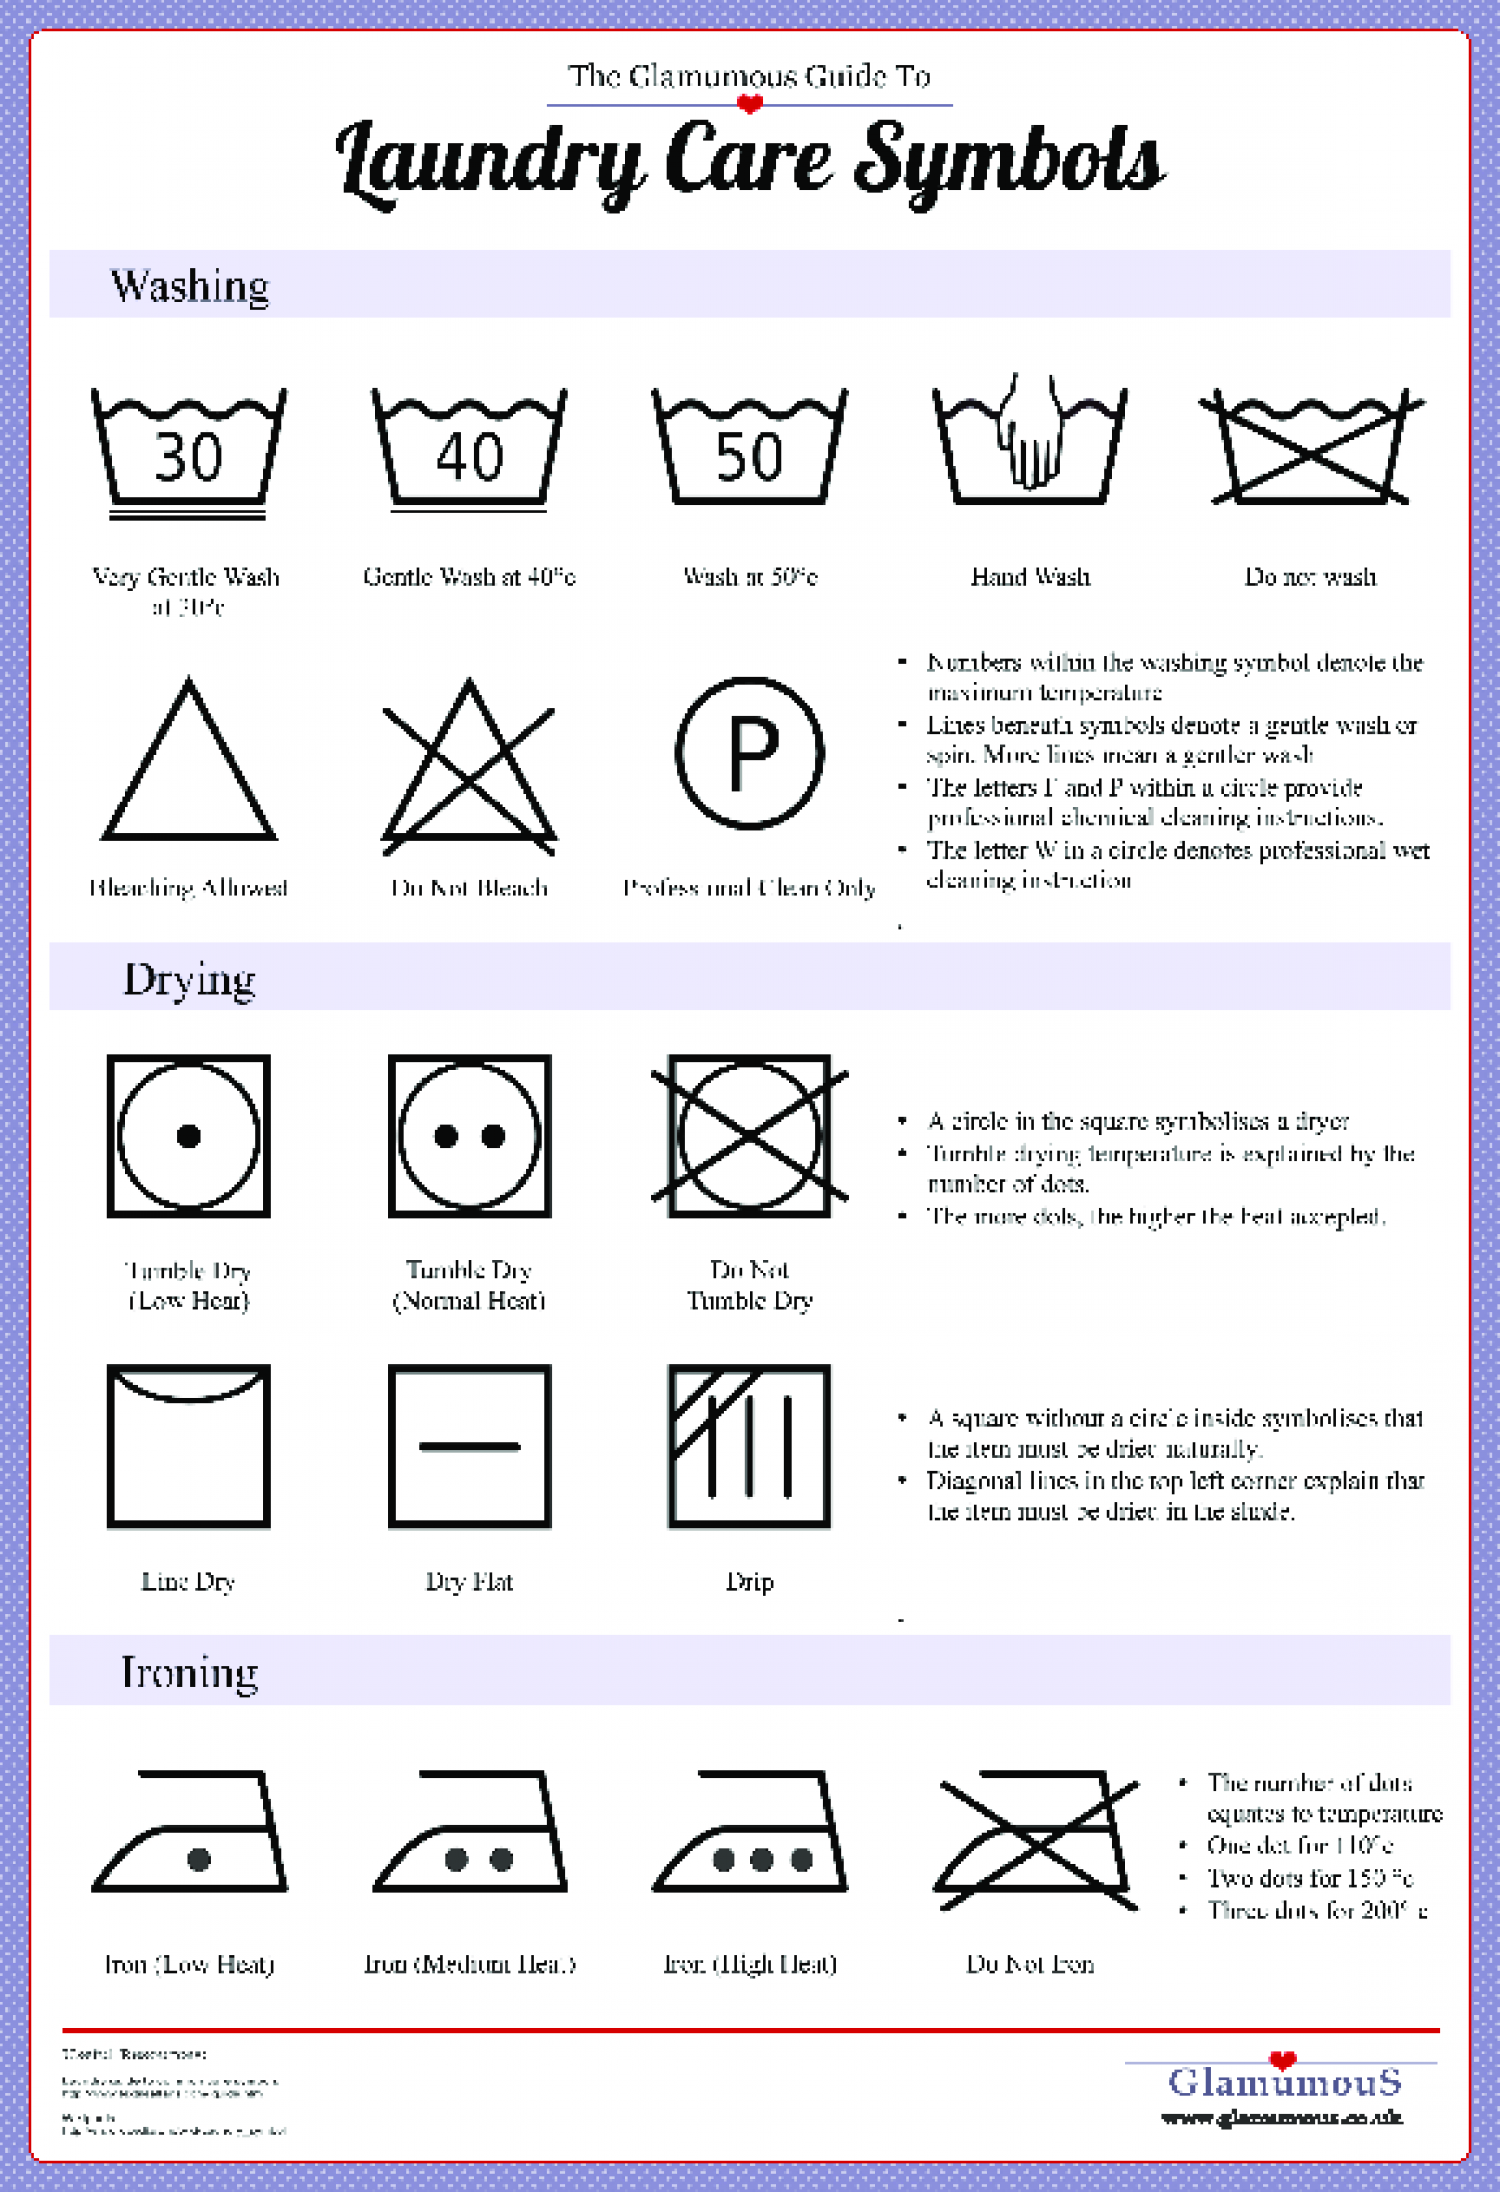 Guide to laundry care symbols visual guide to laundry care symbols infographic buycottarizona